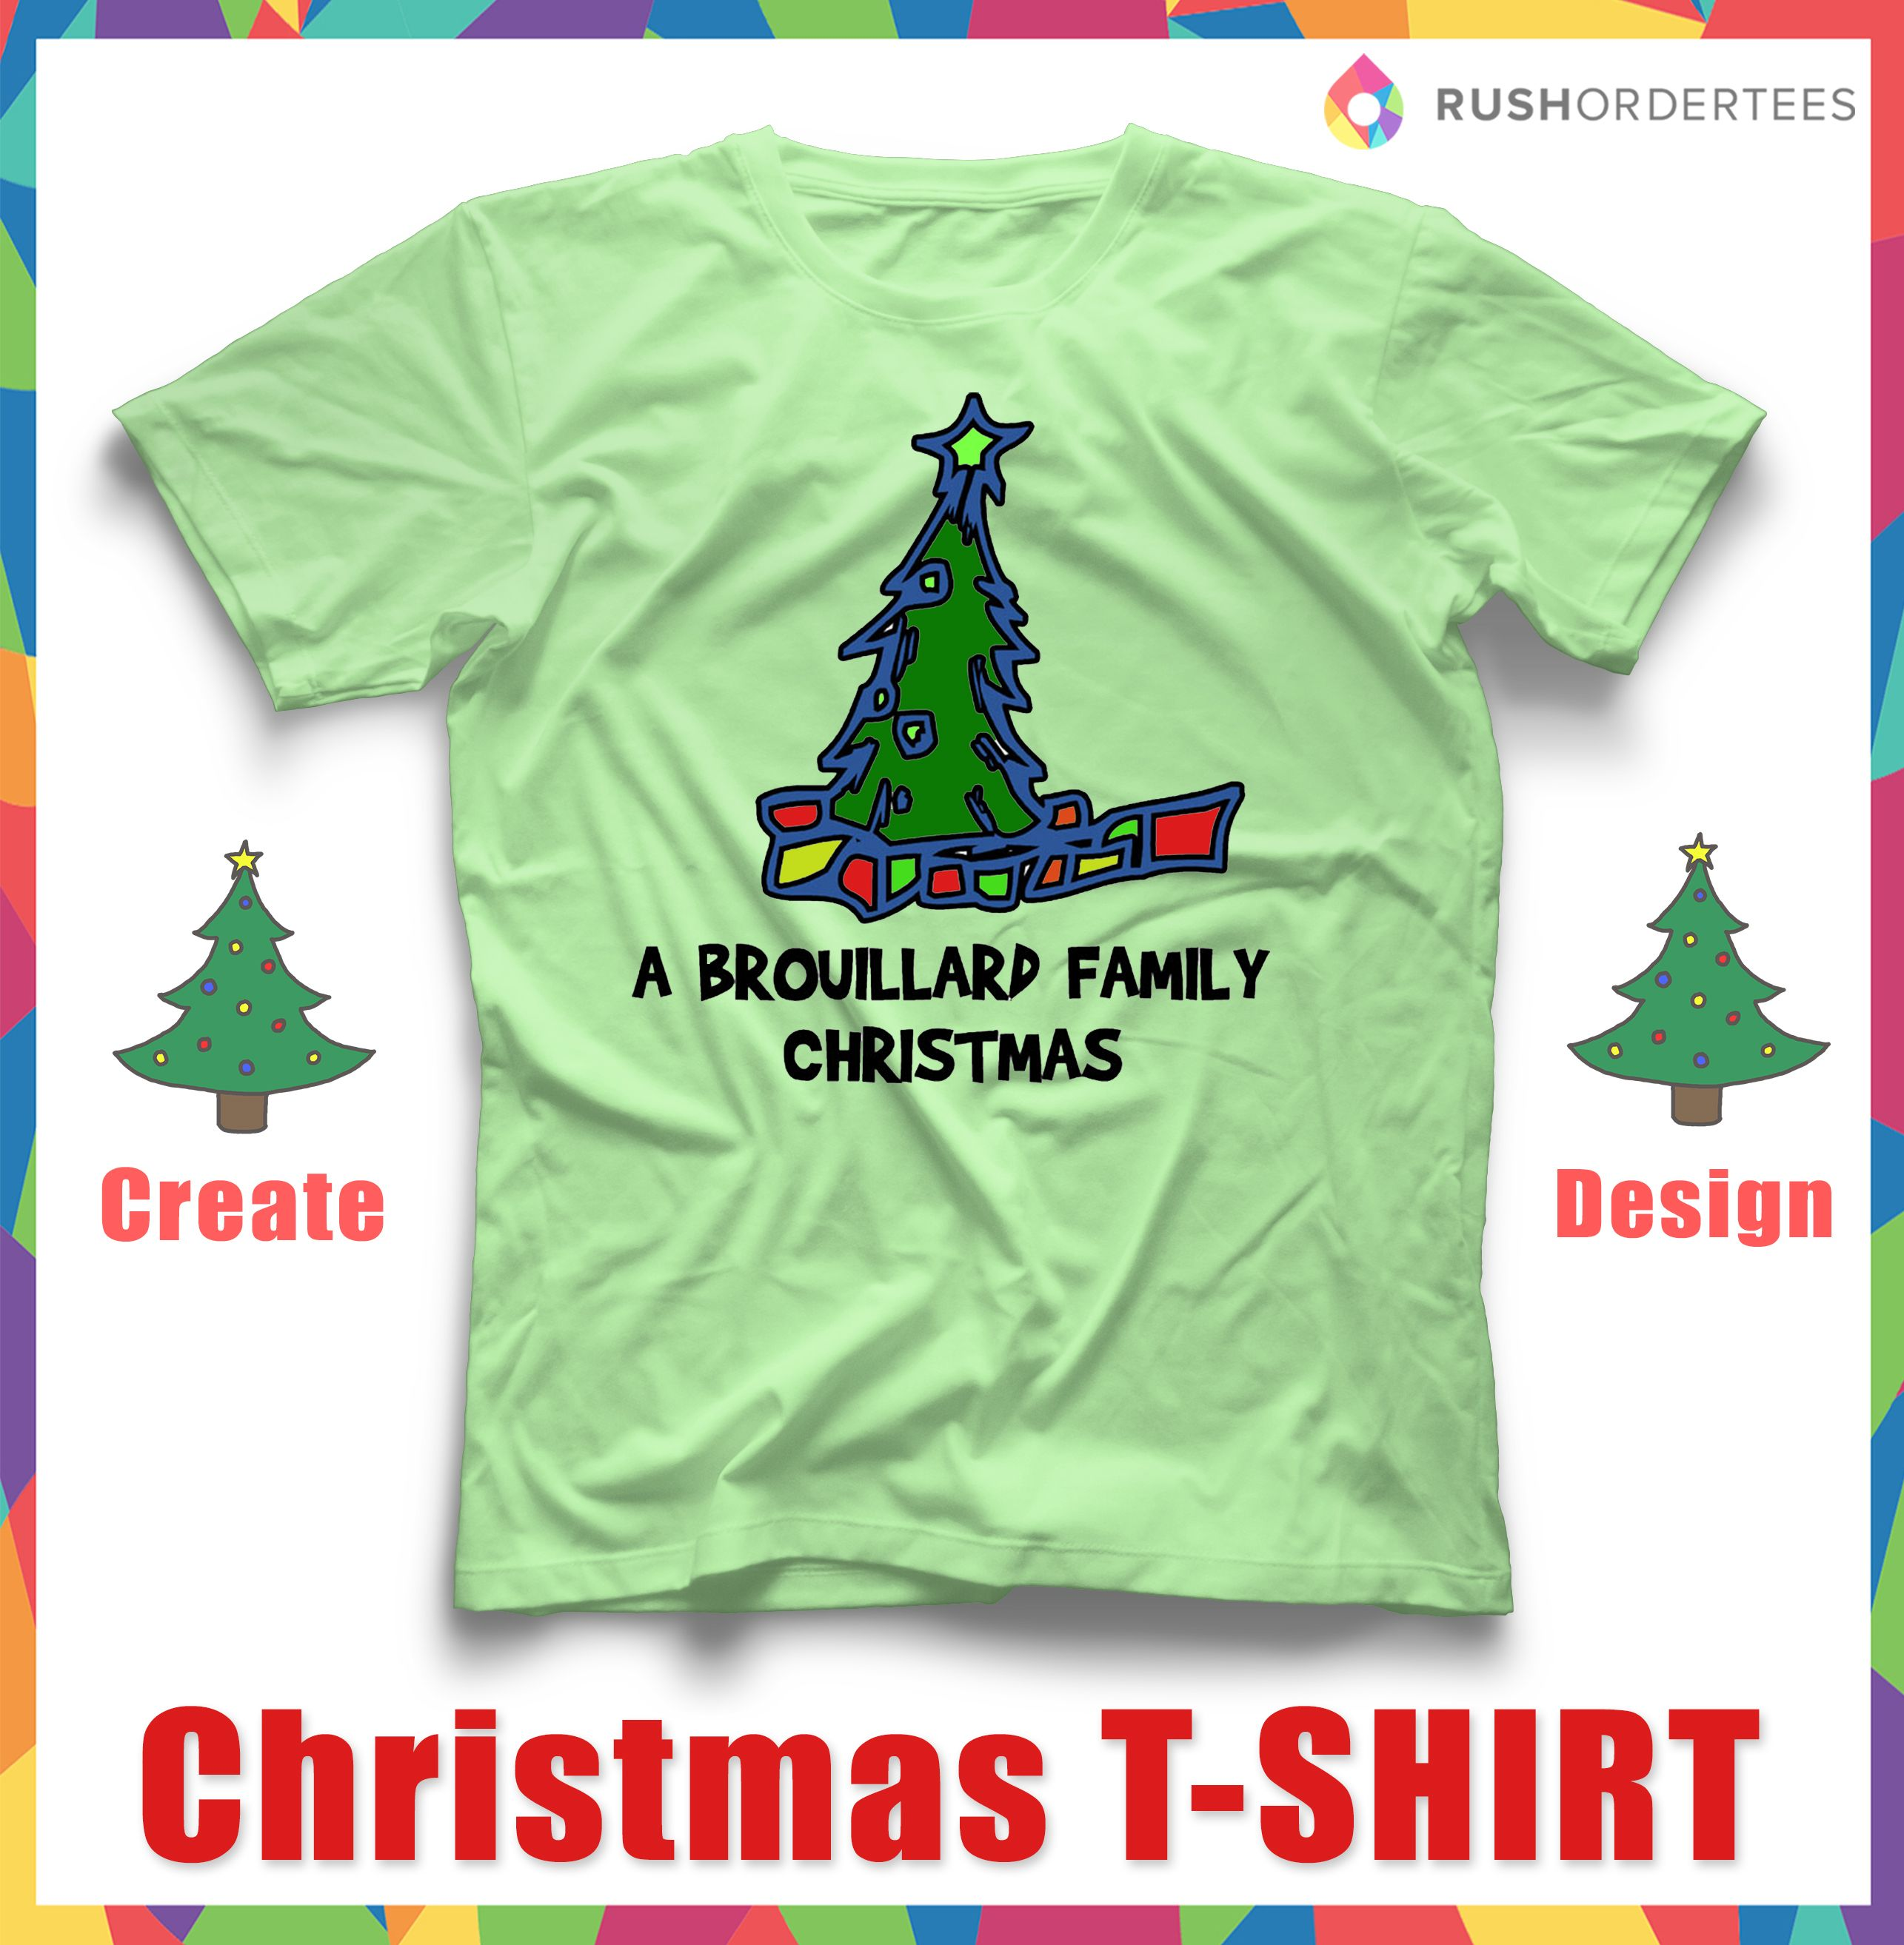 Find More Christmas T Shirt Designs In Our Christmas T Shirt Design